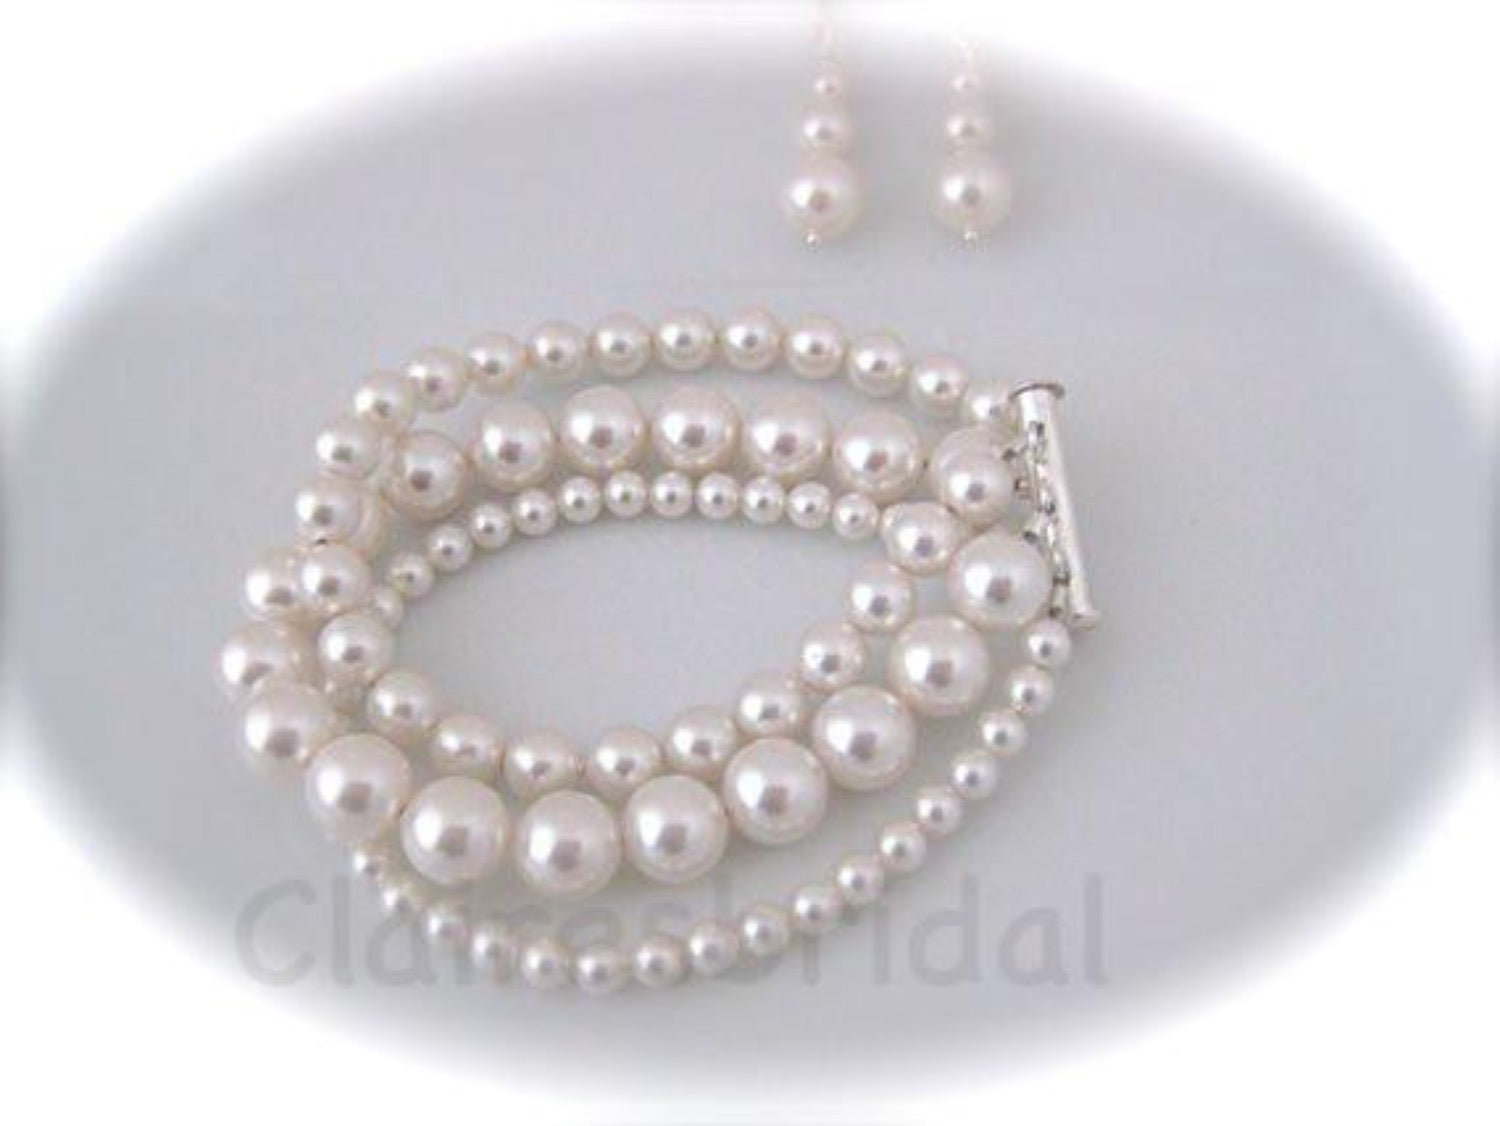 Triple Strand Pearl Cuff Bracelet and Earrings Set Wedding Jewelry Set - Clairesbridal - 4